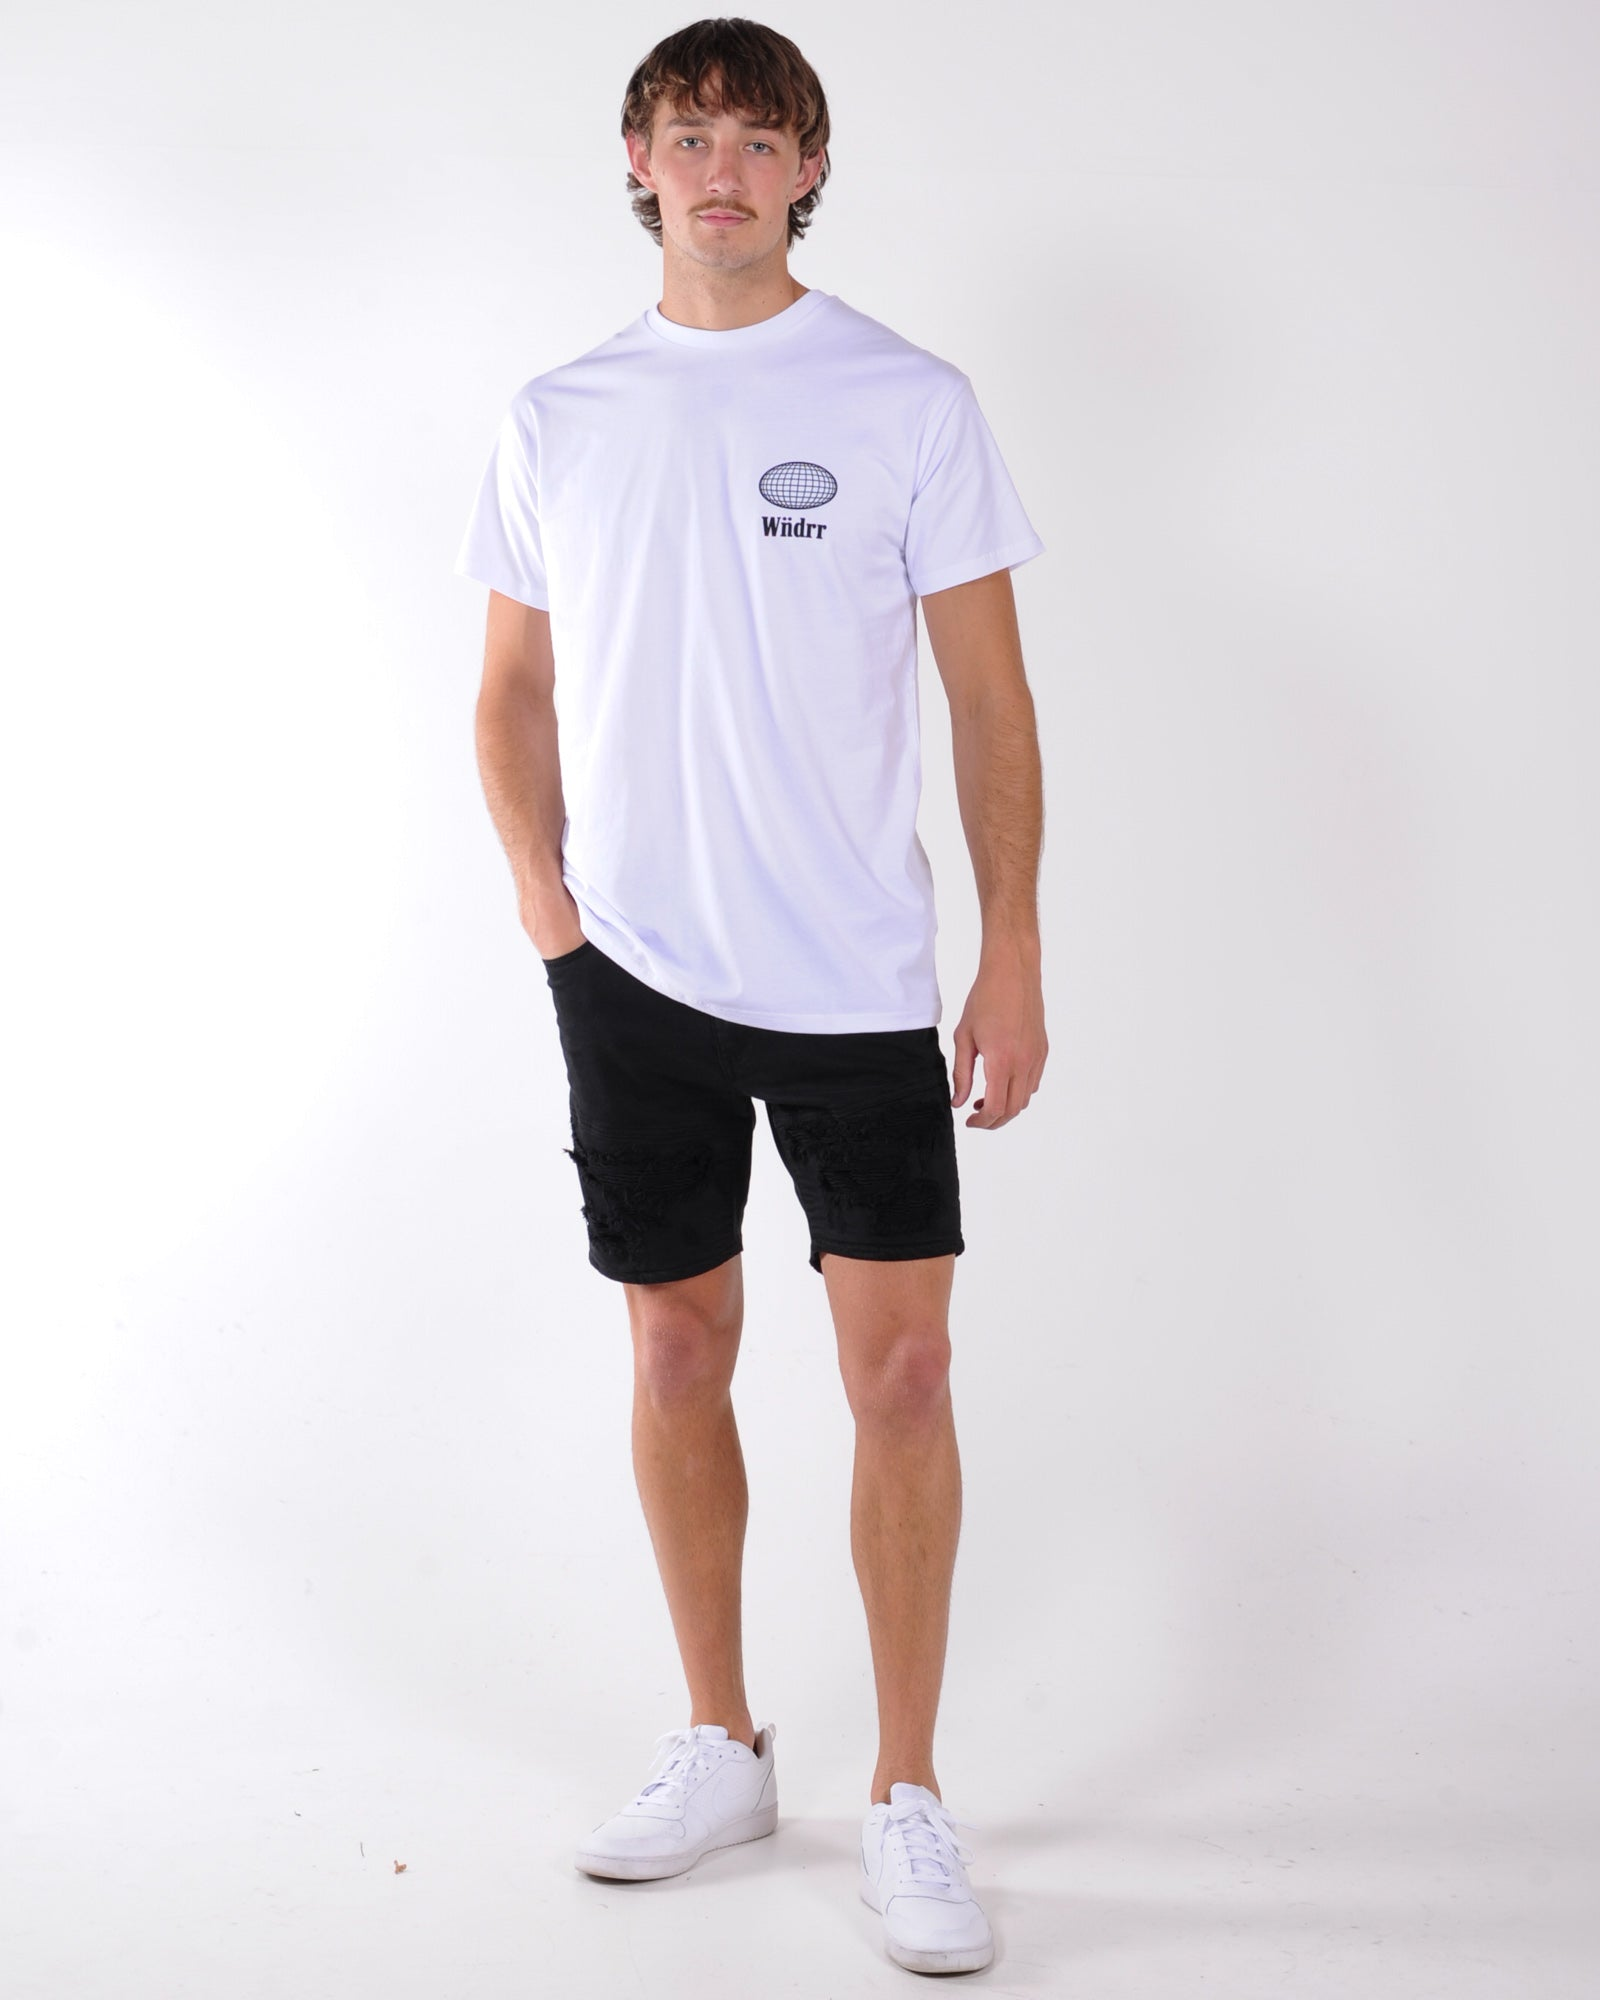 Wndrr Elipse Custom Fit Tee - White